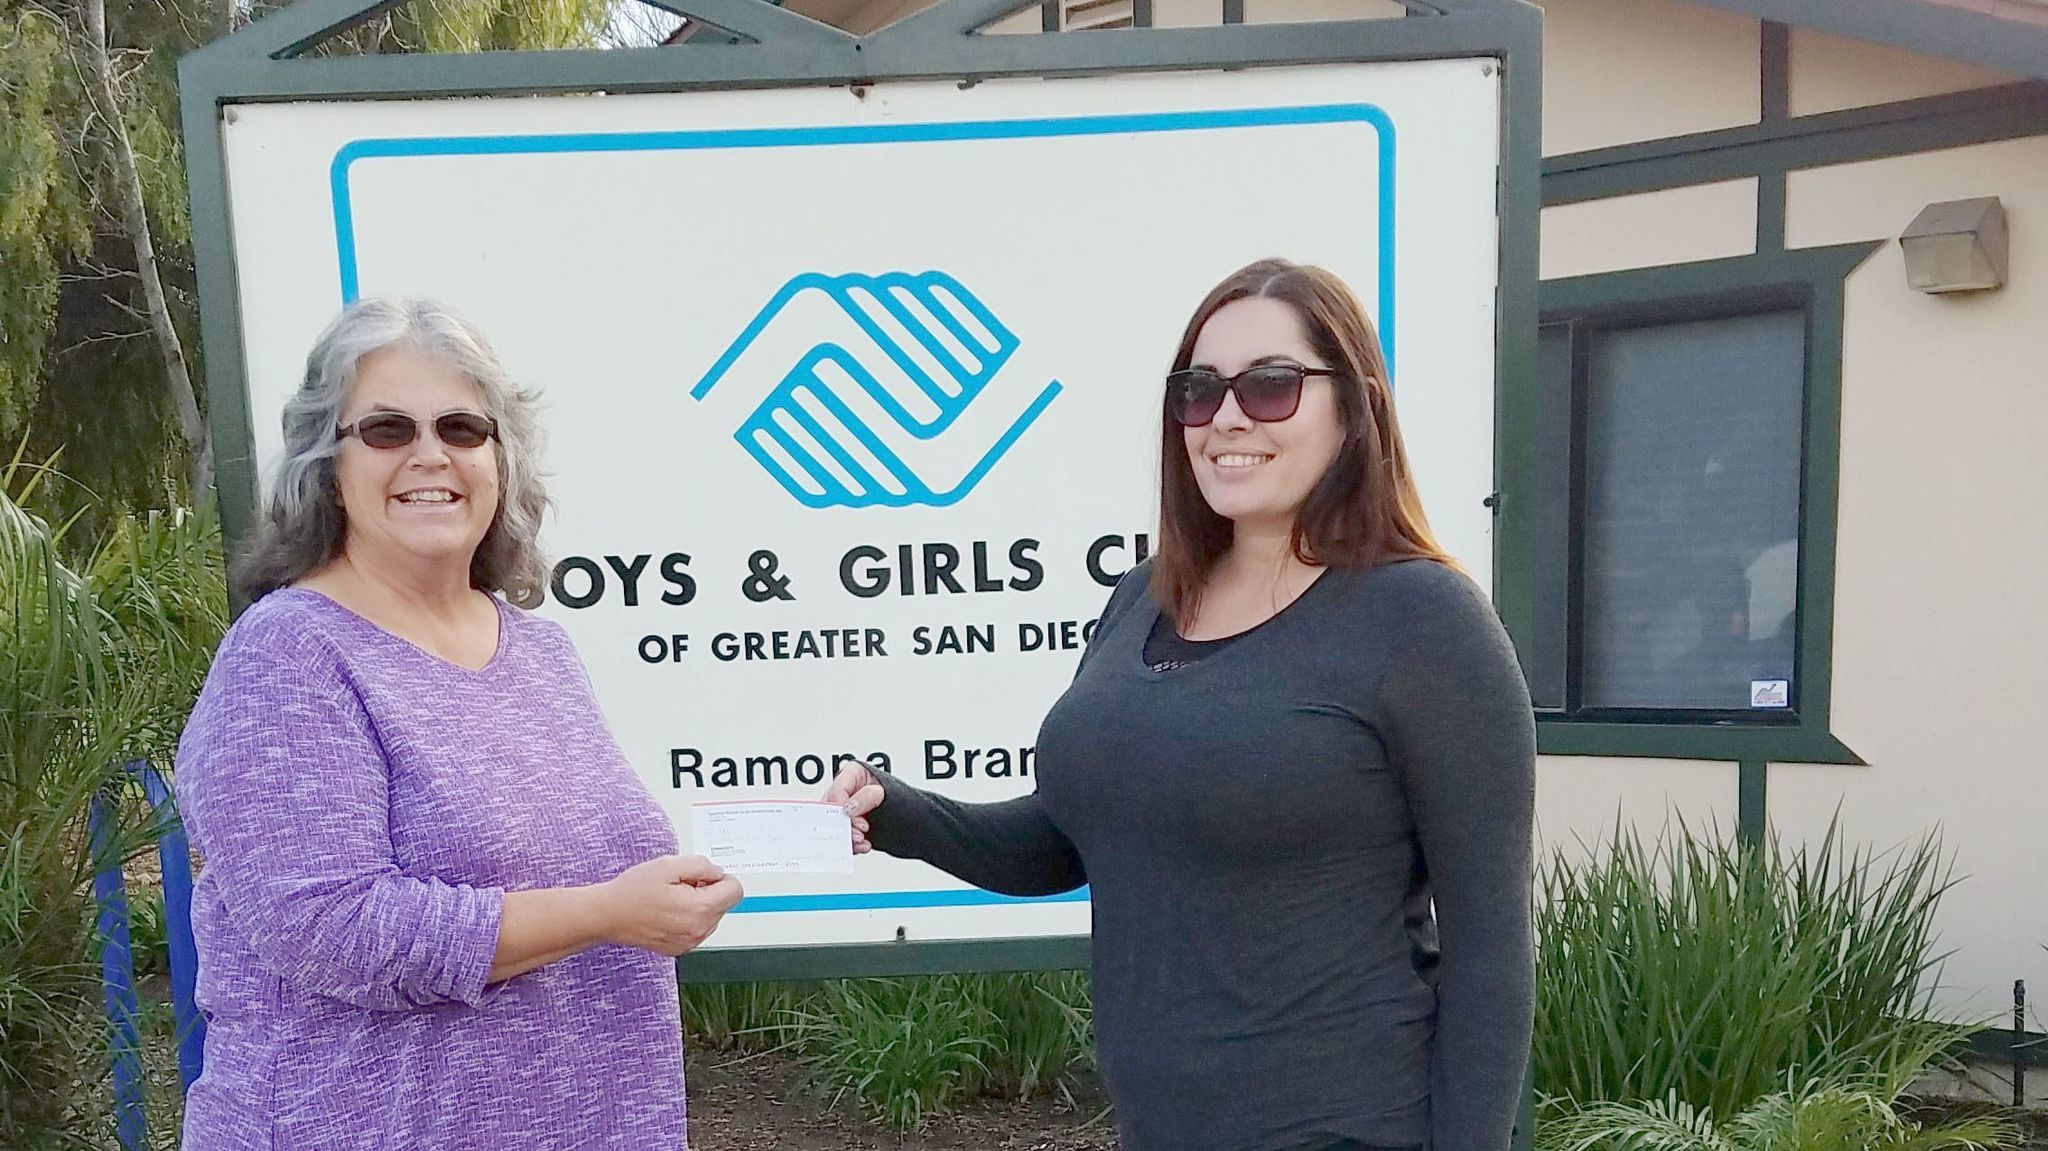 On behalf of Ramona Rotary Club, Kim Lasley, left, the club's president, presents Simone McCune, supervisor of the Ramona Branch of the Boys & Girls Club of Greater San Diego, with a check for $250 for the club at 622 E St. in Collier Park.